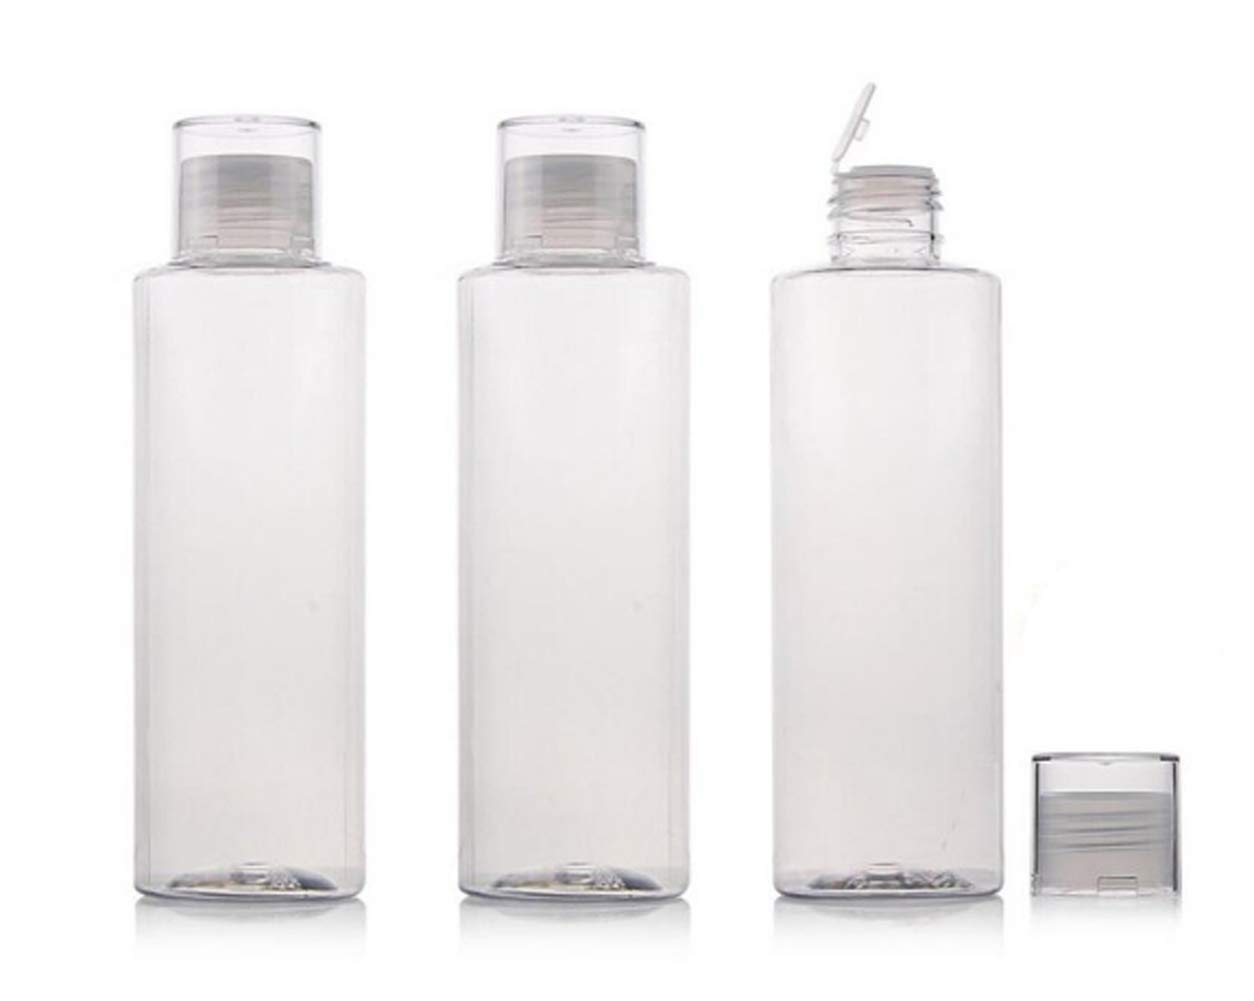 3PCS 150ml/5oz Empty Clear Plastic Soft Squeeze Bottle With Flip Cap Refillable Cosmetic Makeup Travel Sample Packing Tube Container Jars for Cosmetic Bath Shower Gel Lotion Liquid Shampoo